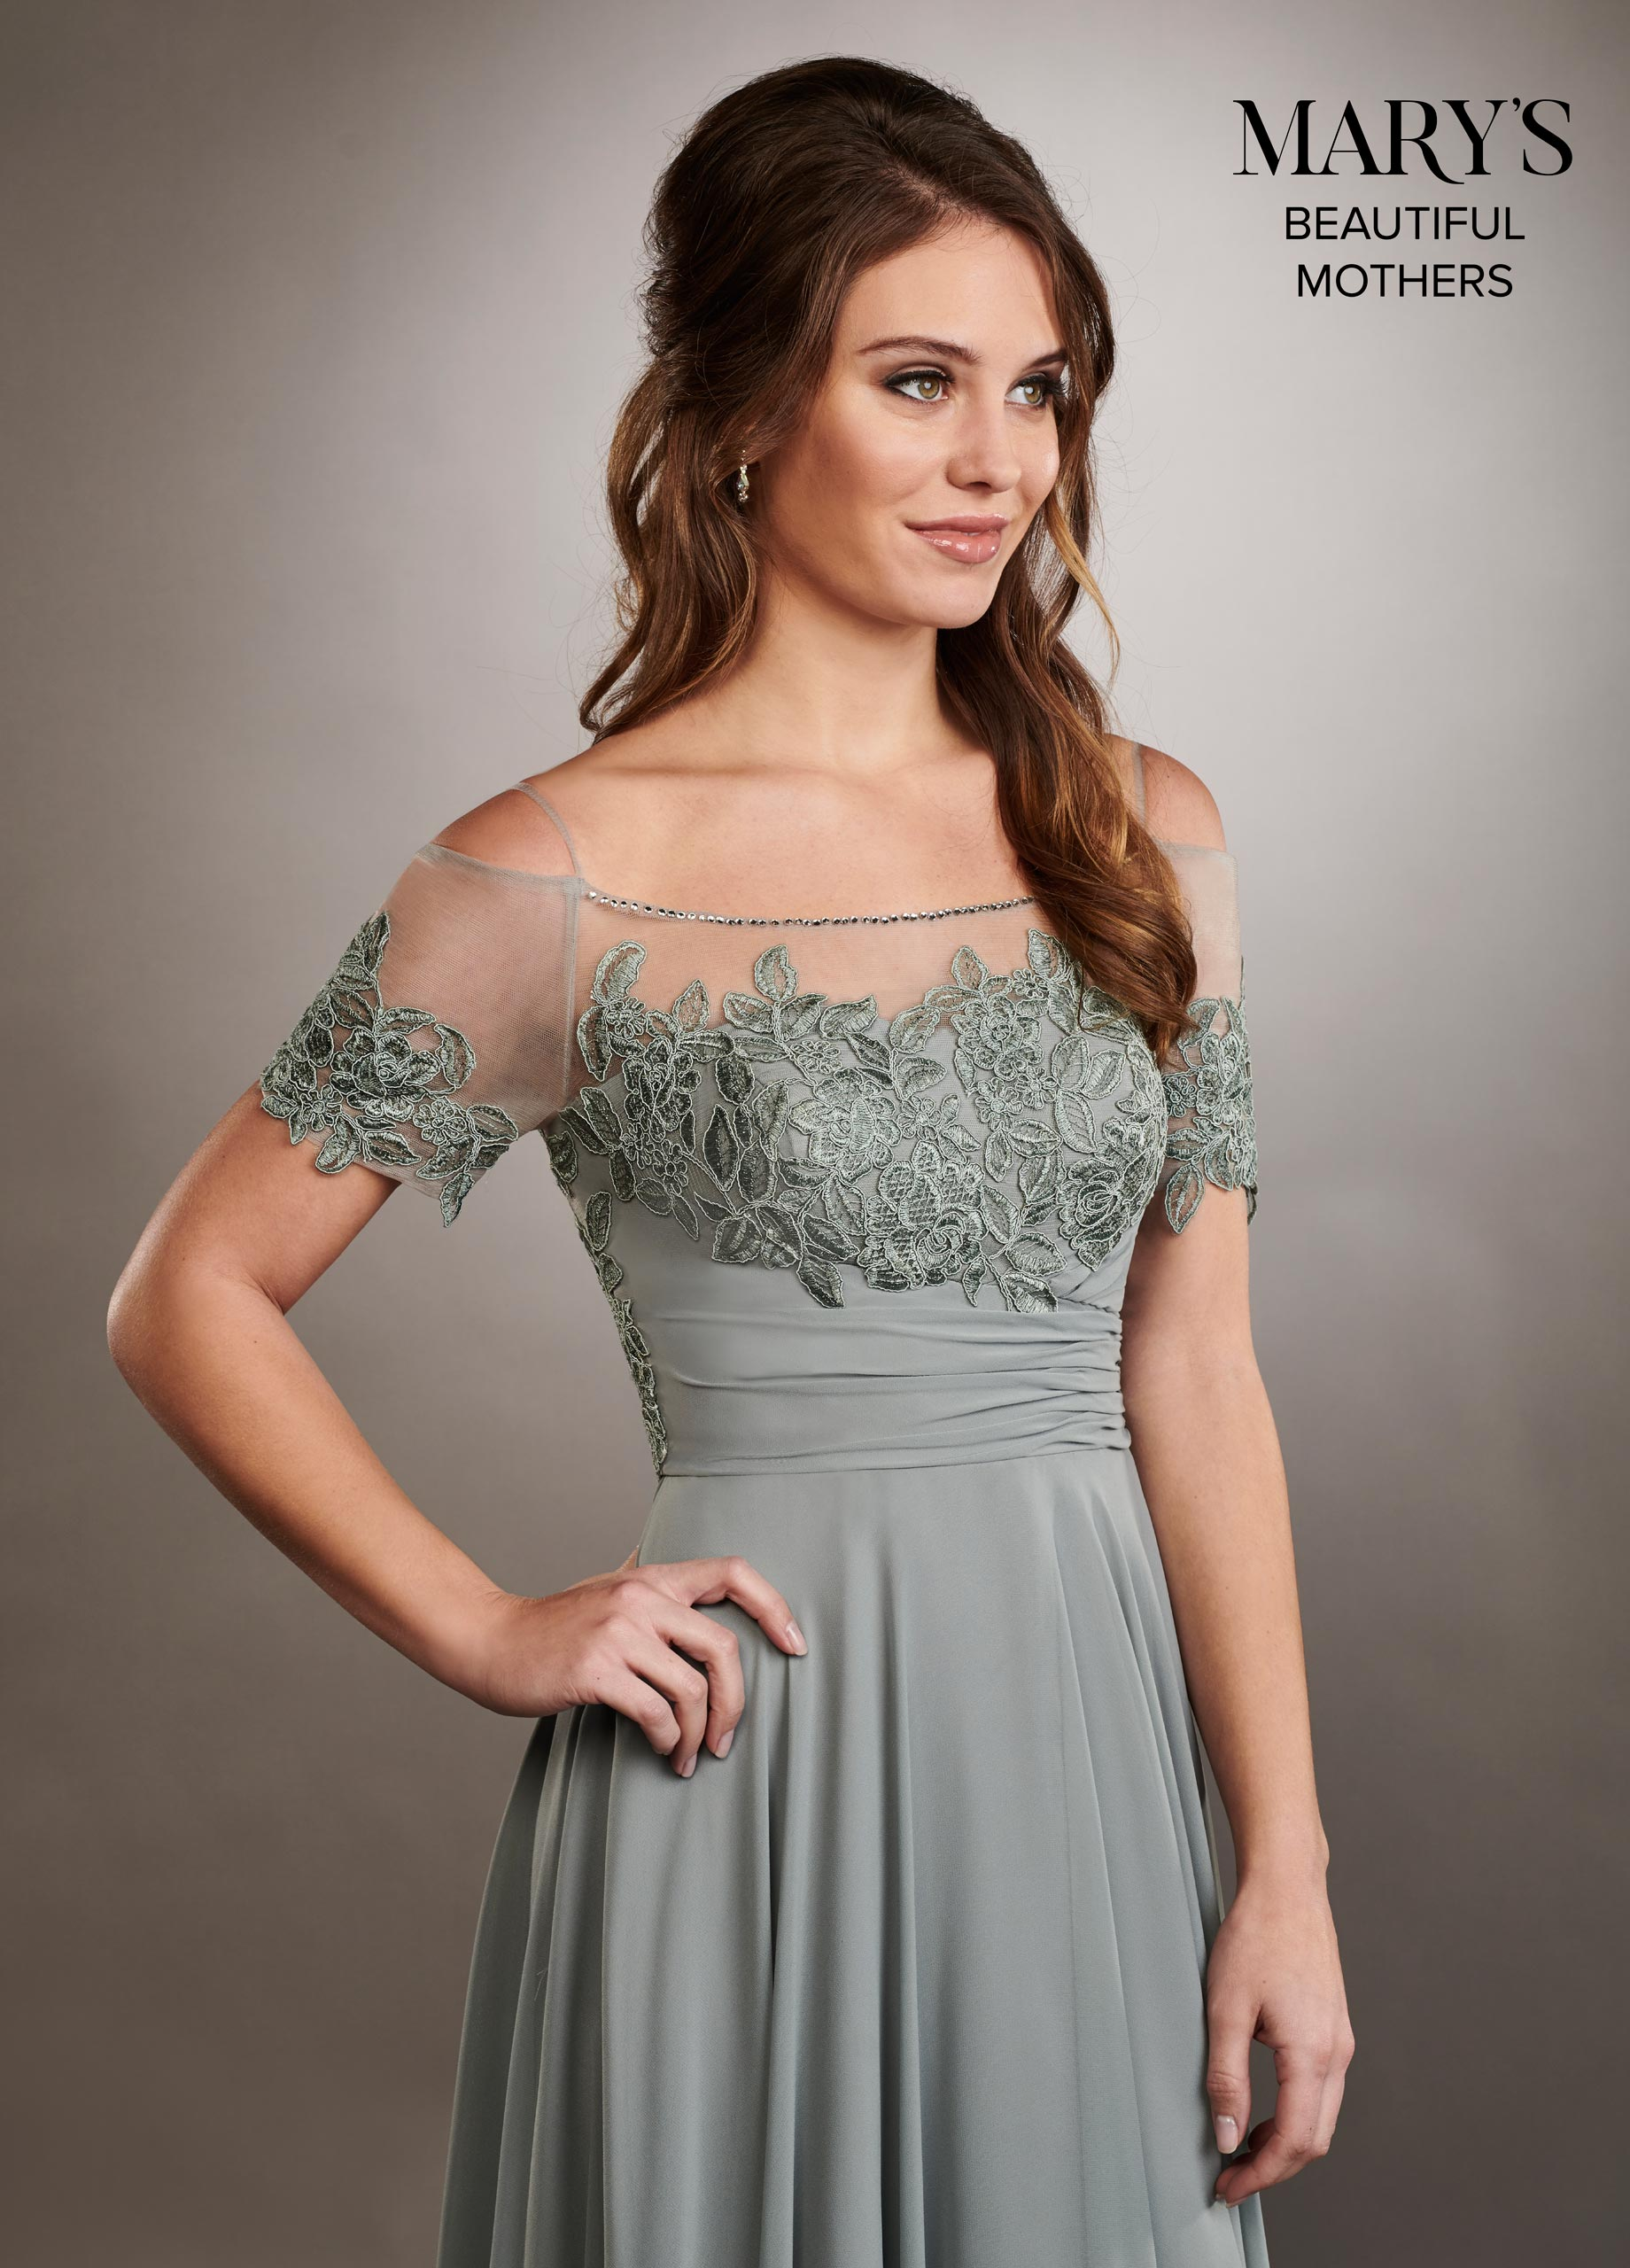 Mother Of The Bride Dresses | Beautiful Mothers | Style - MB8063